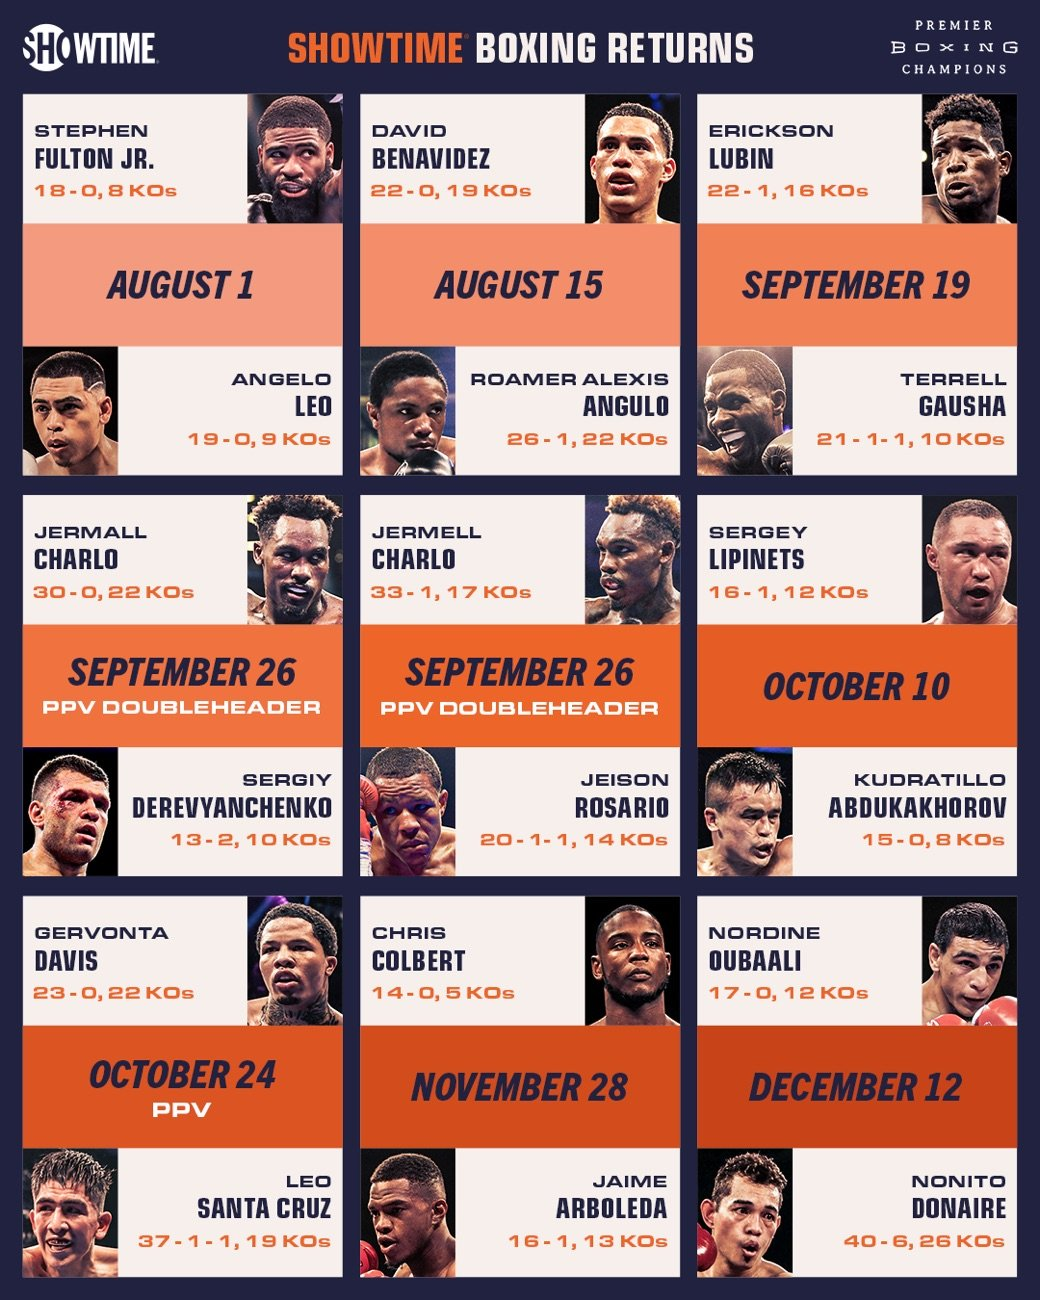 Jeison Rosario, Jermall Charlo, Jermell Charlo, Sergey Derevyanchenko - Showtime Sports® And Premier Boxing Champions Return To The Ring With Robust Live Boxing Schedule Spanning Five Months - Nine Live Events * 18 Undefeated Fighters * Nine World Champions and Eight World Championship Fights Begin Saturday, August 1